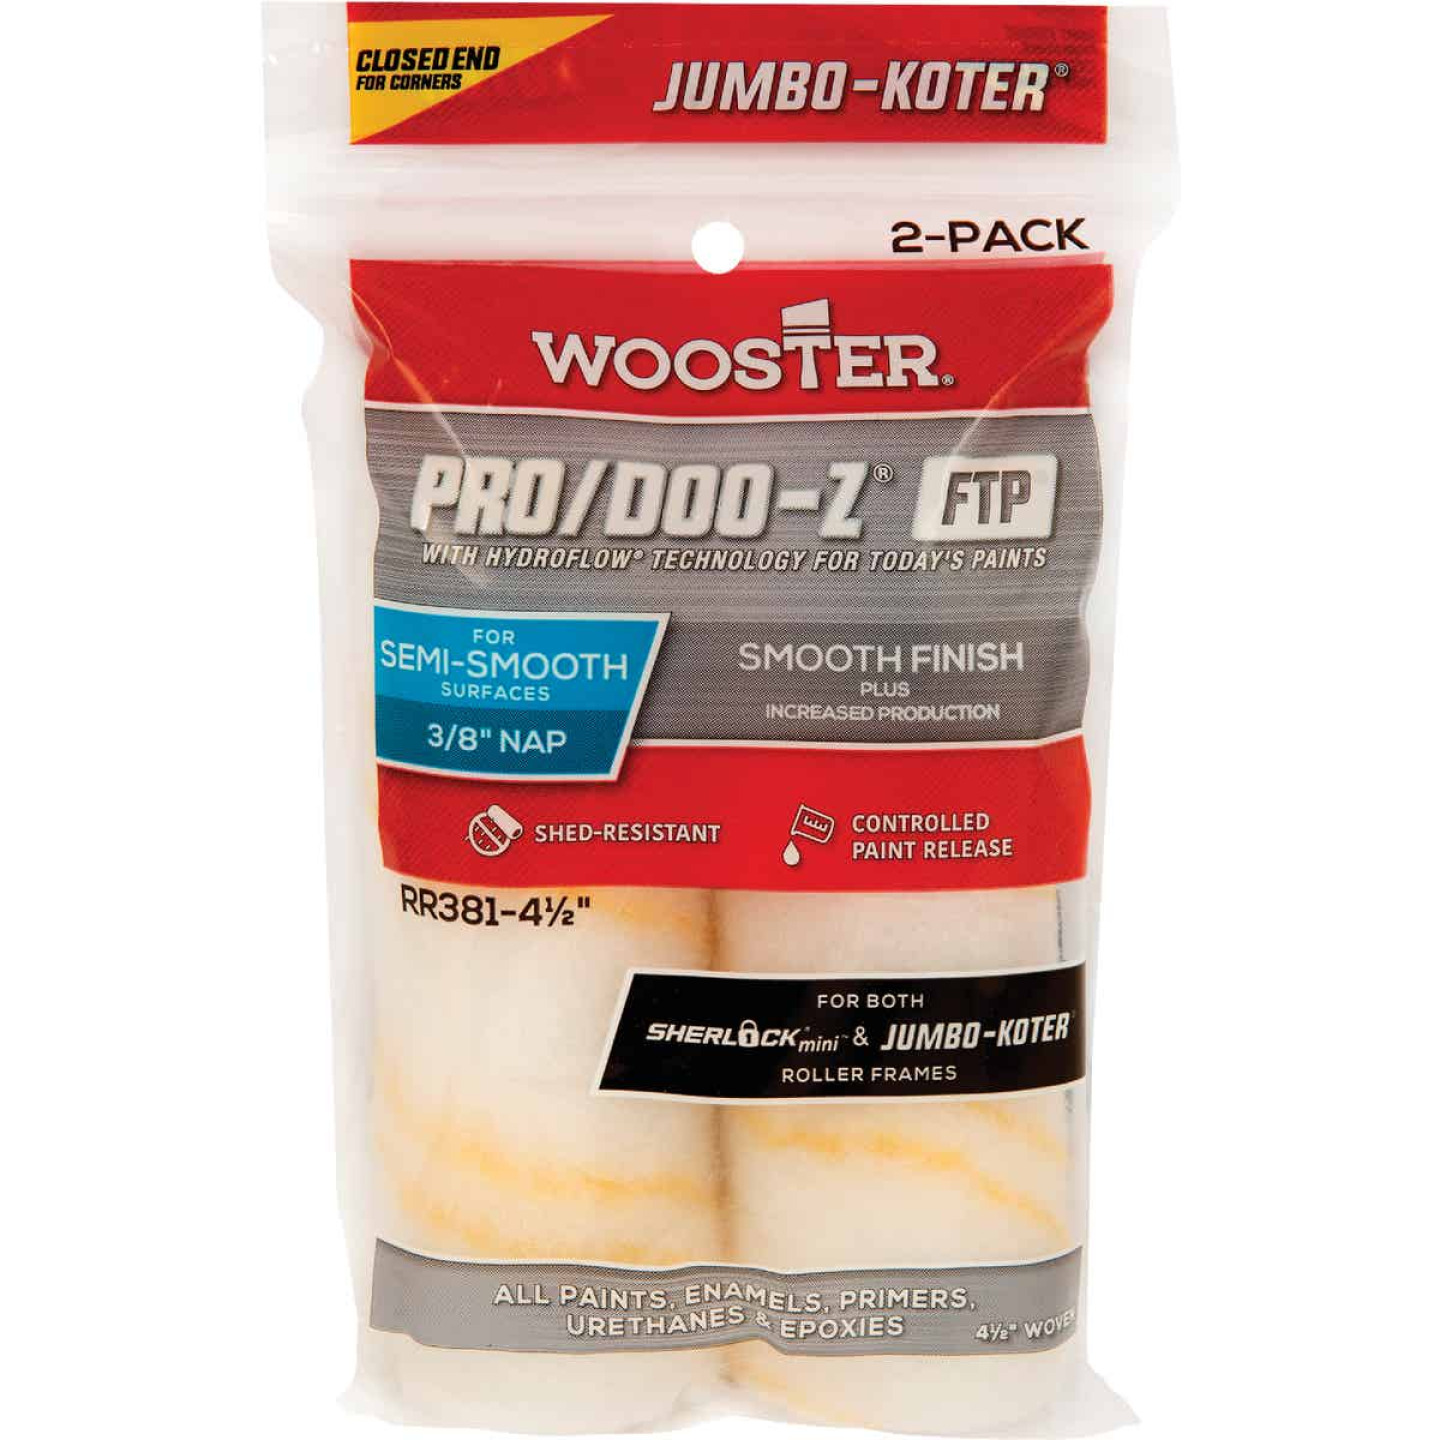 Wooster Jumbo-Koter P/D FTP 4-1/2 In. x 3/8 In. Woven Paint Roller Cover (2 Pack) Image 1